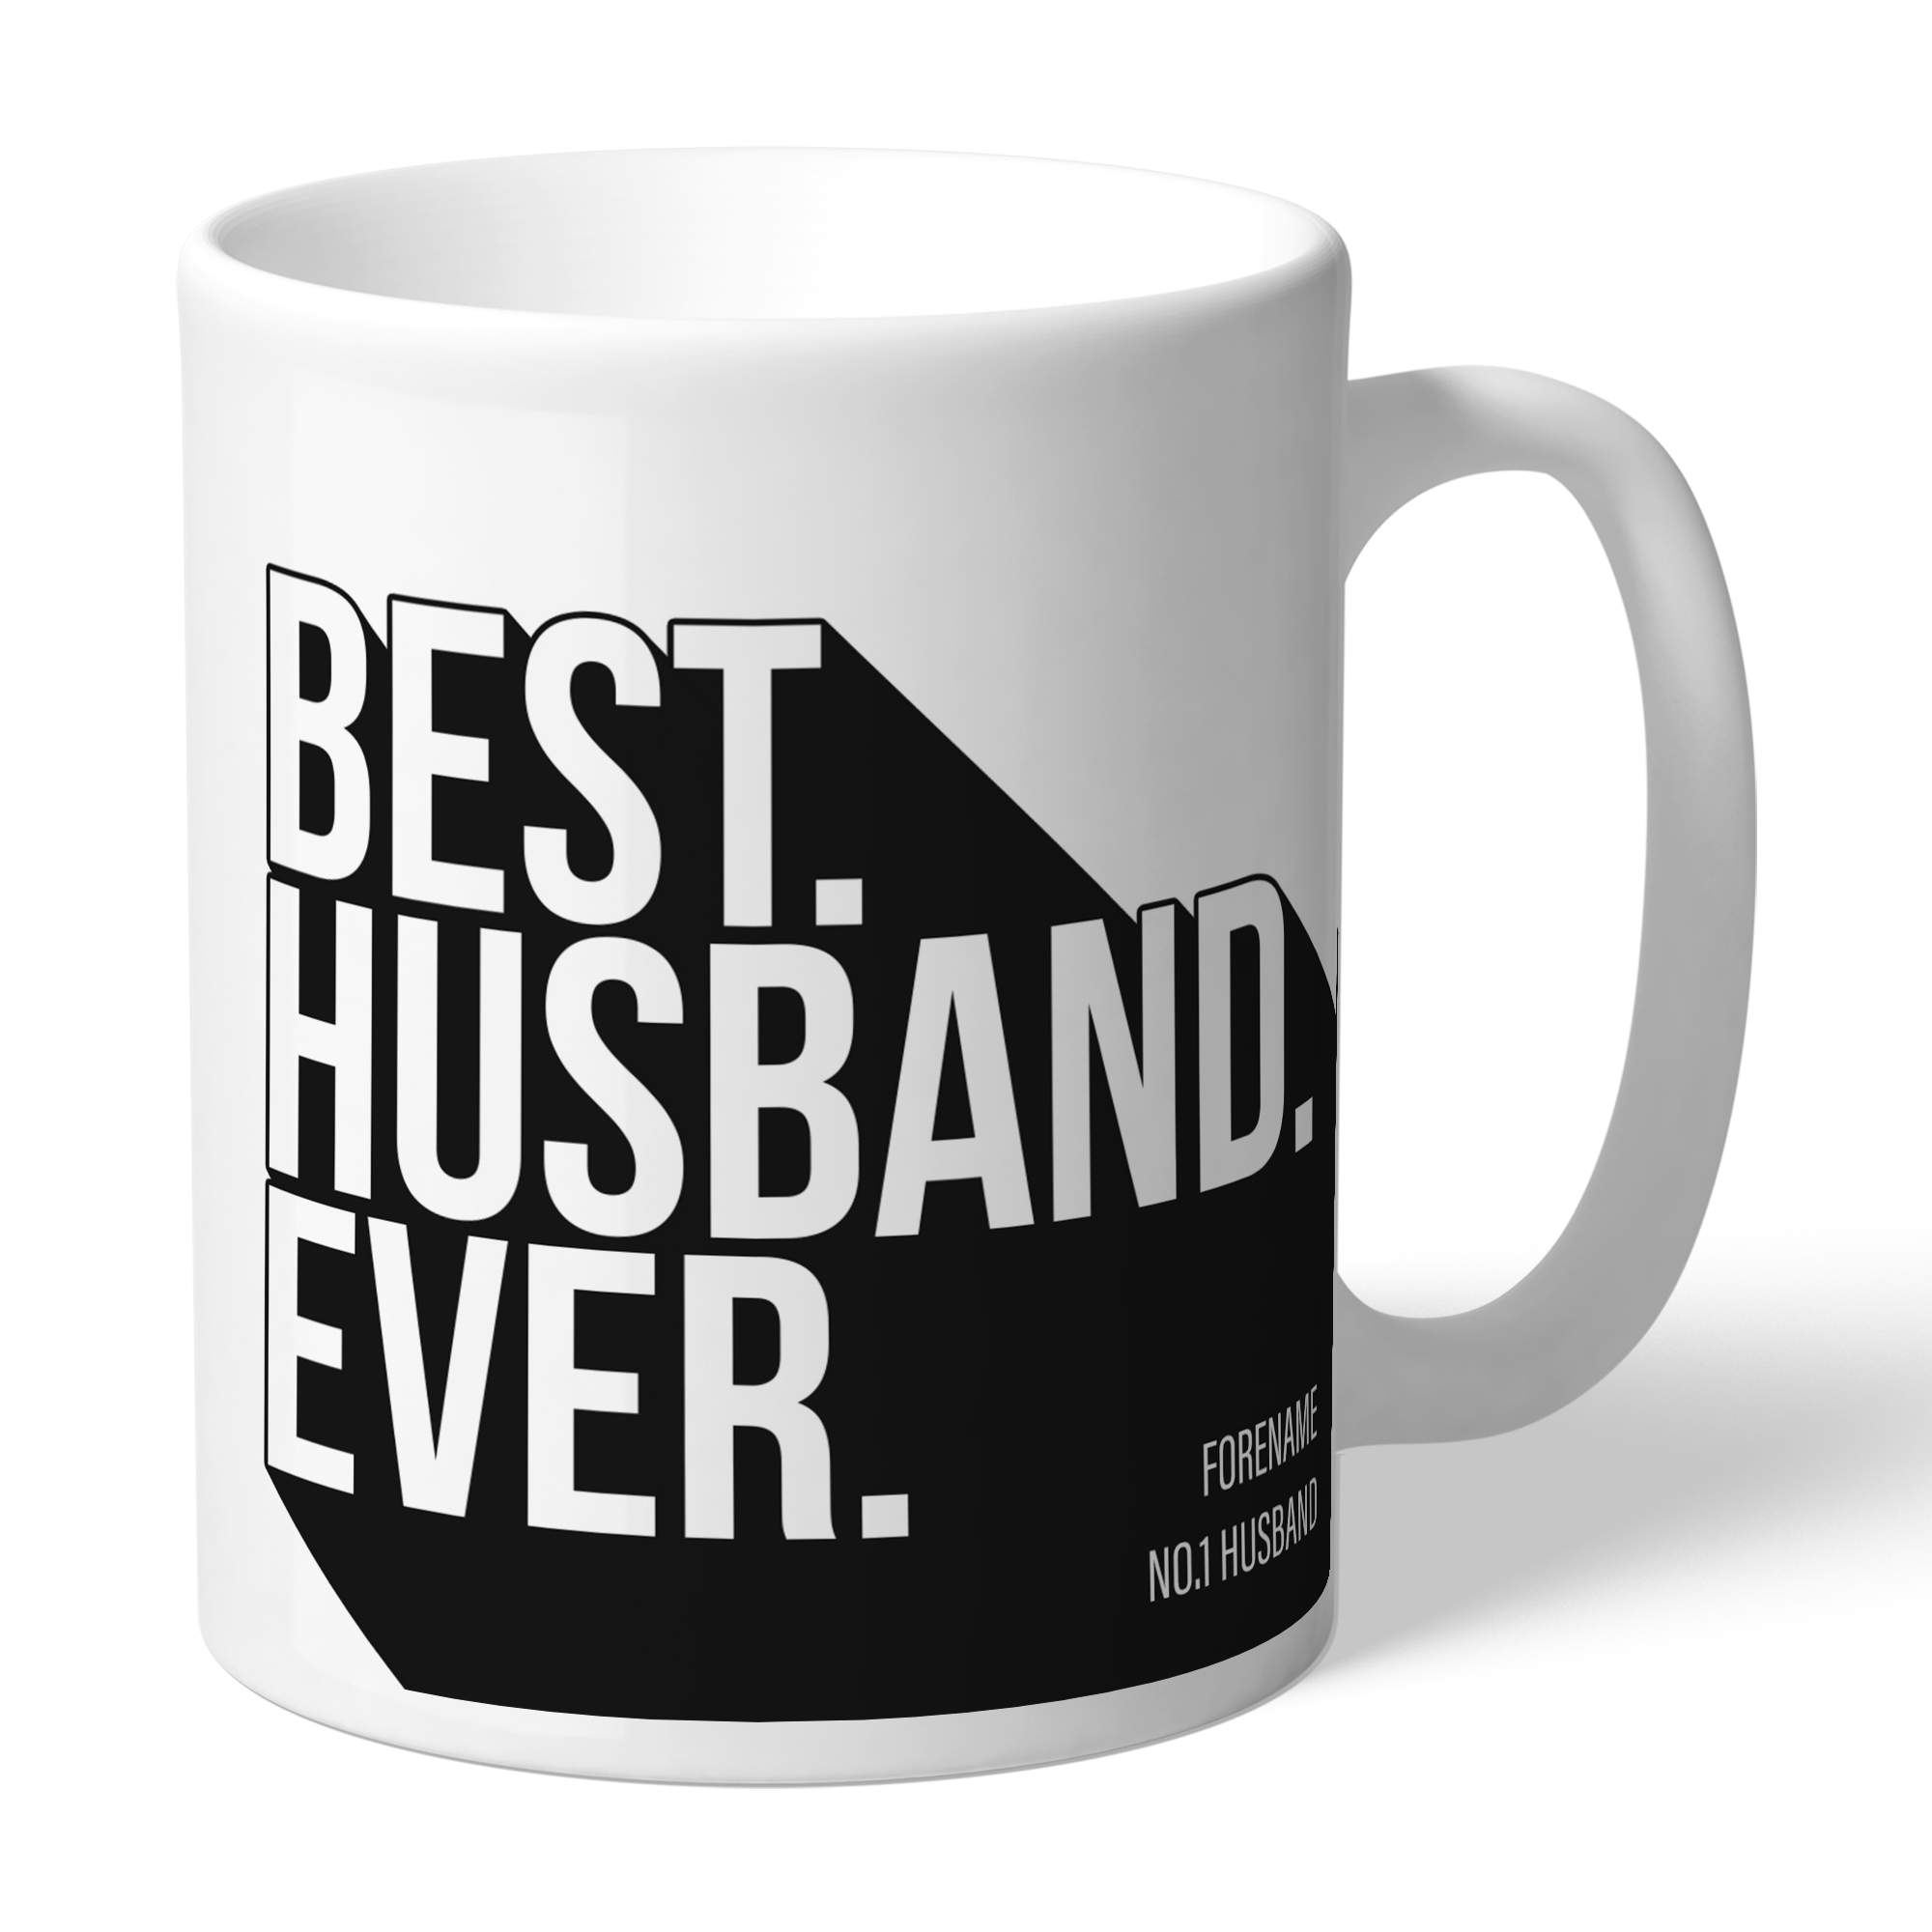 Newcastle United FC Best Husband Ever Mug